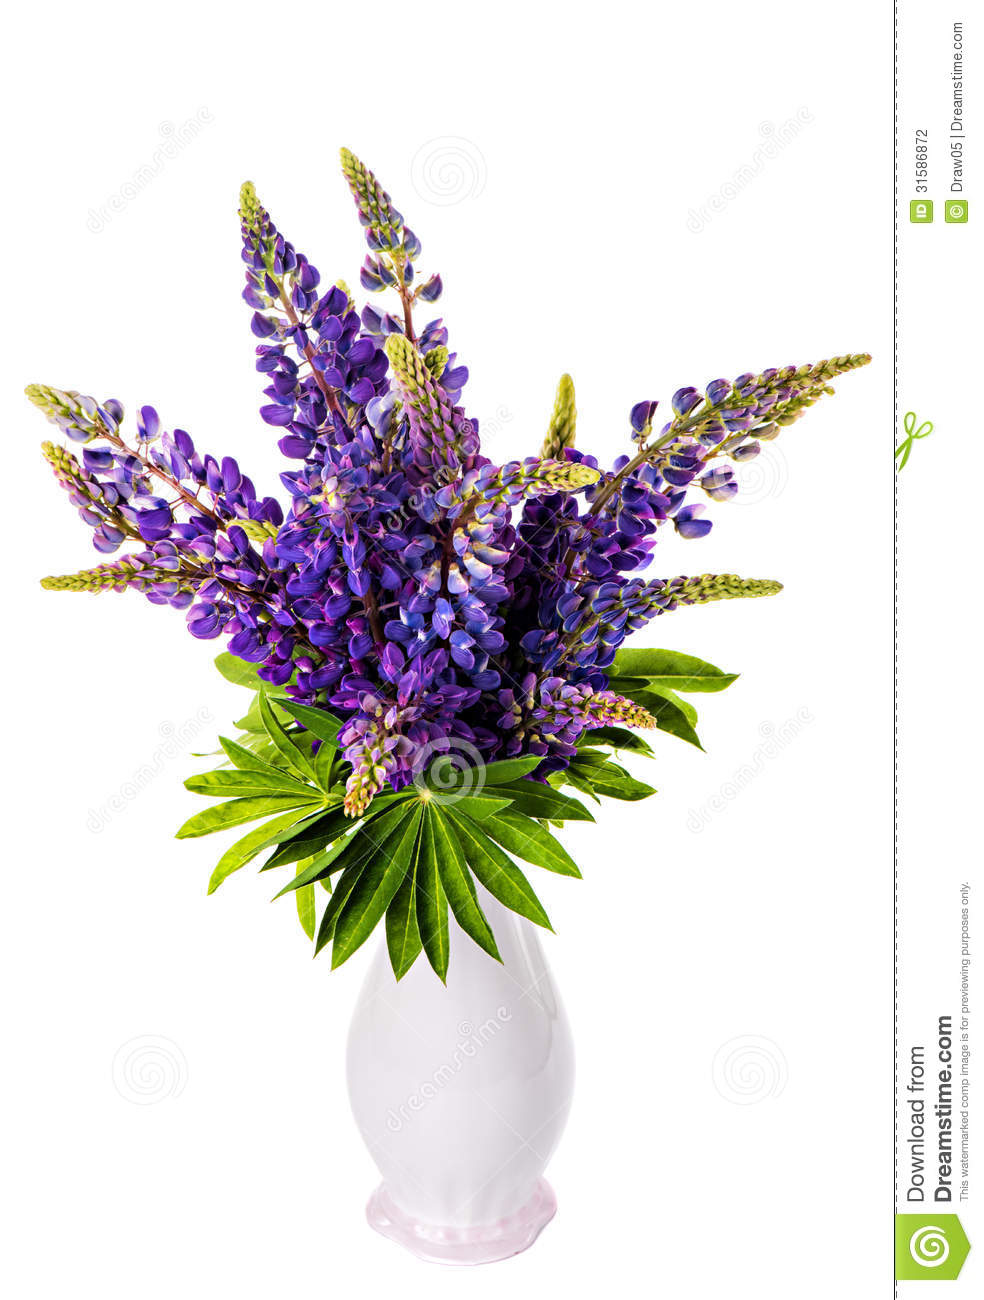 Lupine clipart #16, Download drawings